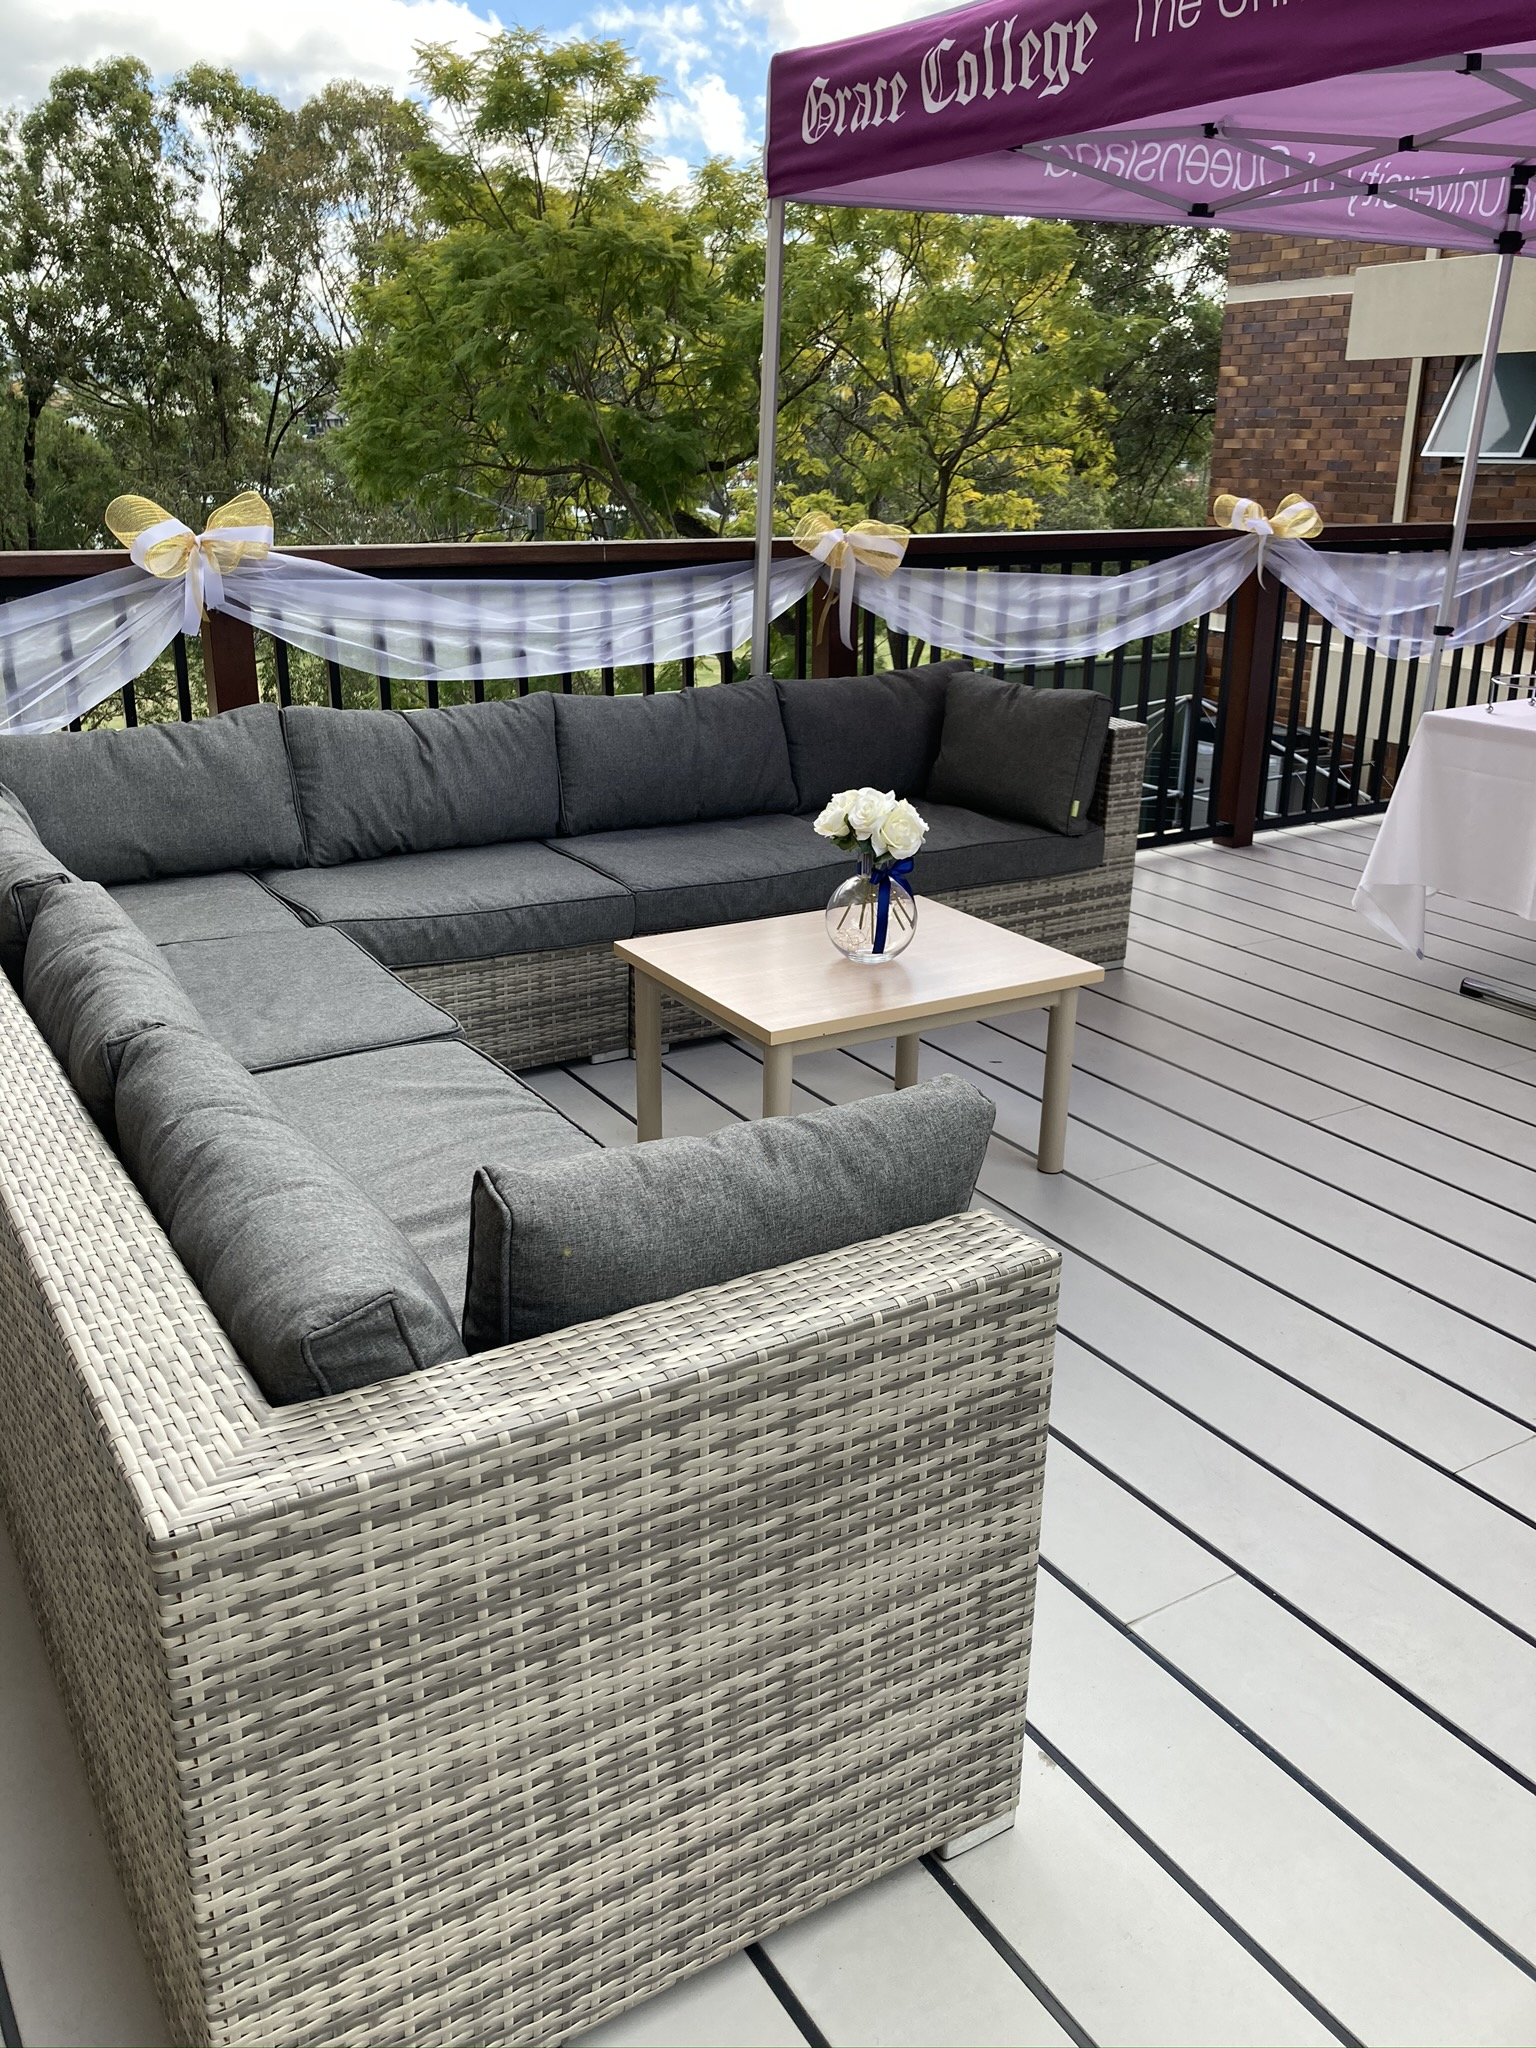 Lounge area on the deck in the outdoor area